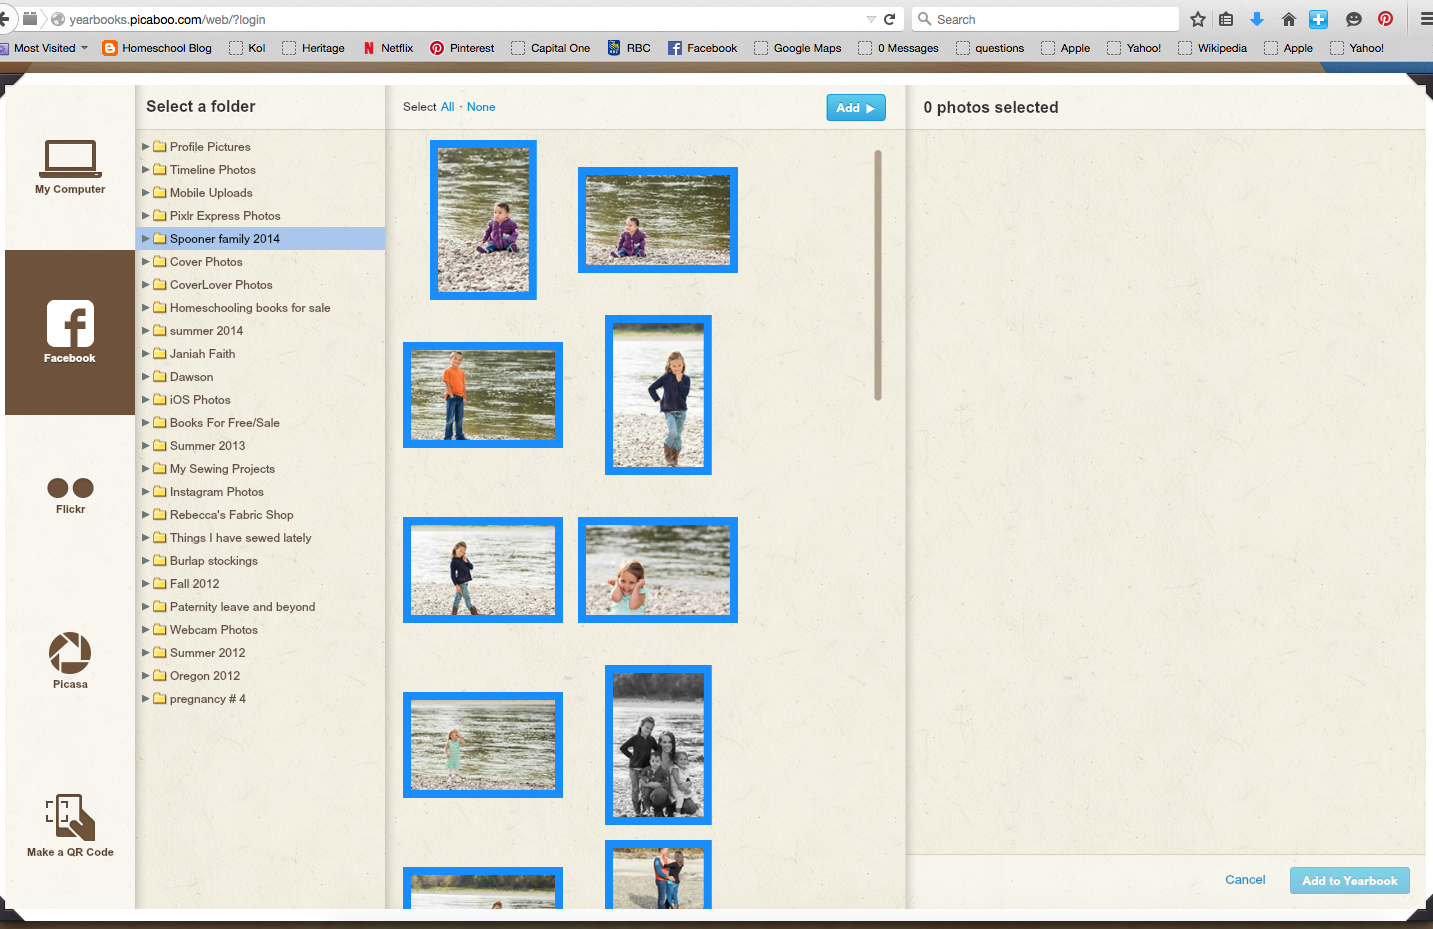 Uploading Photos to Picaboo Yearbooks